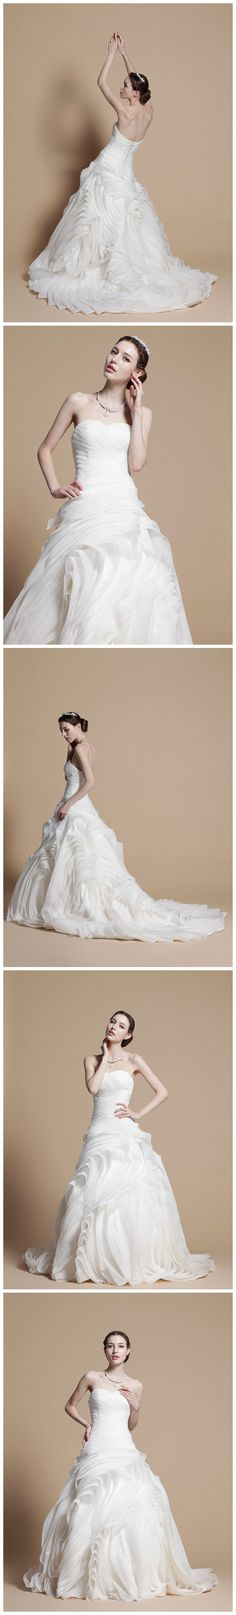 Good wedding dress website... this dress is funky. Not what I'm aiming for but yeah the website is good.